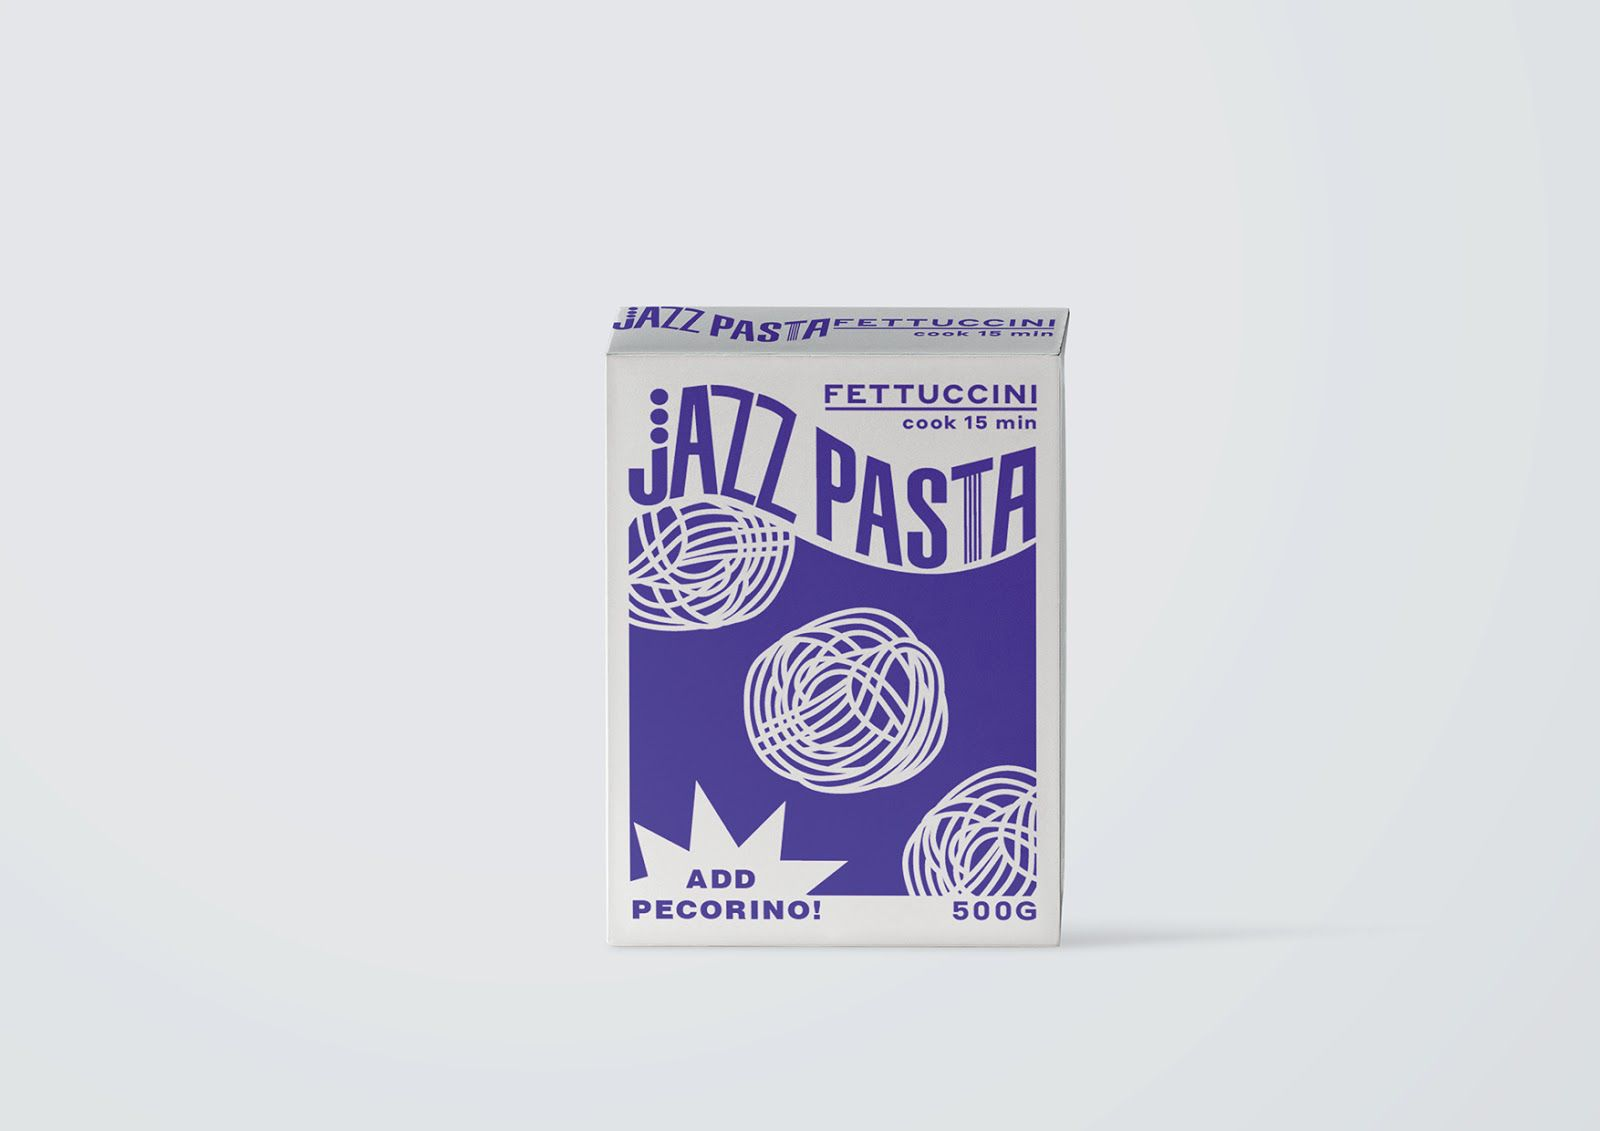 Jazz Pasta (pâtes) I Design  (projet étudiant) : Valeria Obrazkova (HSE Art and Design School), Russie (avril 2020)